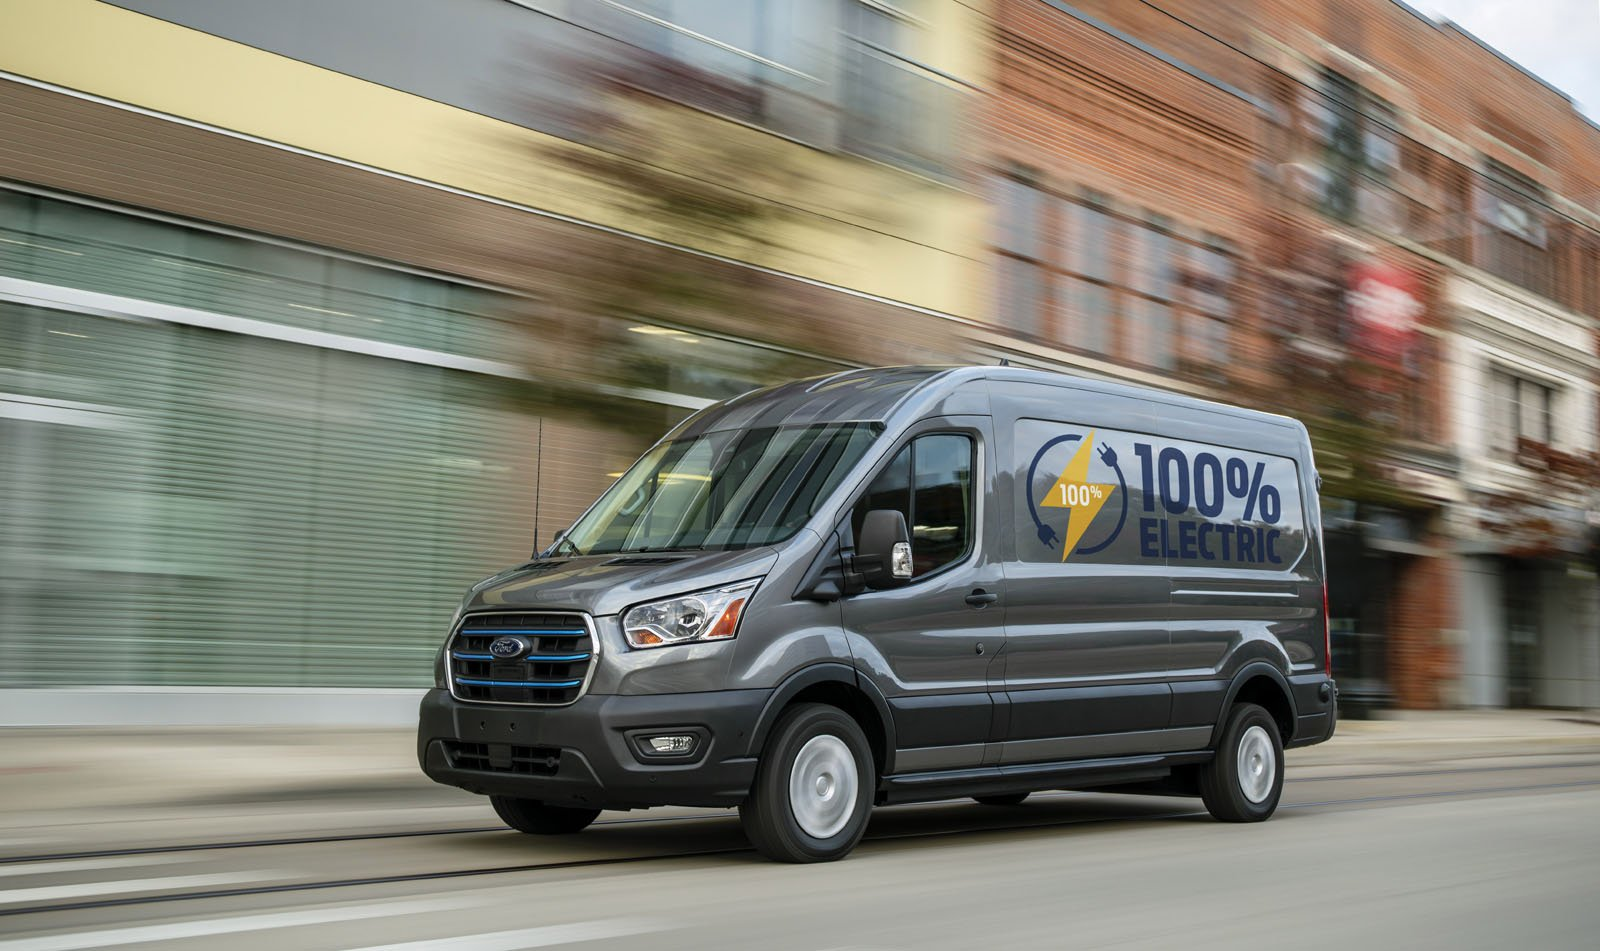 2022 Ford E-Transit electric van